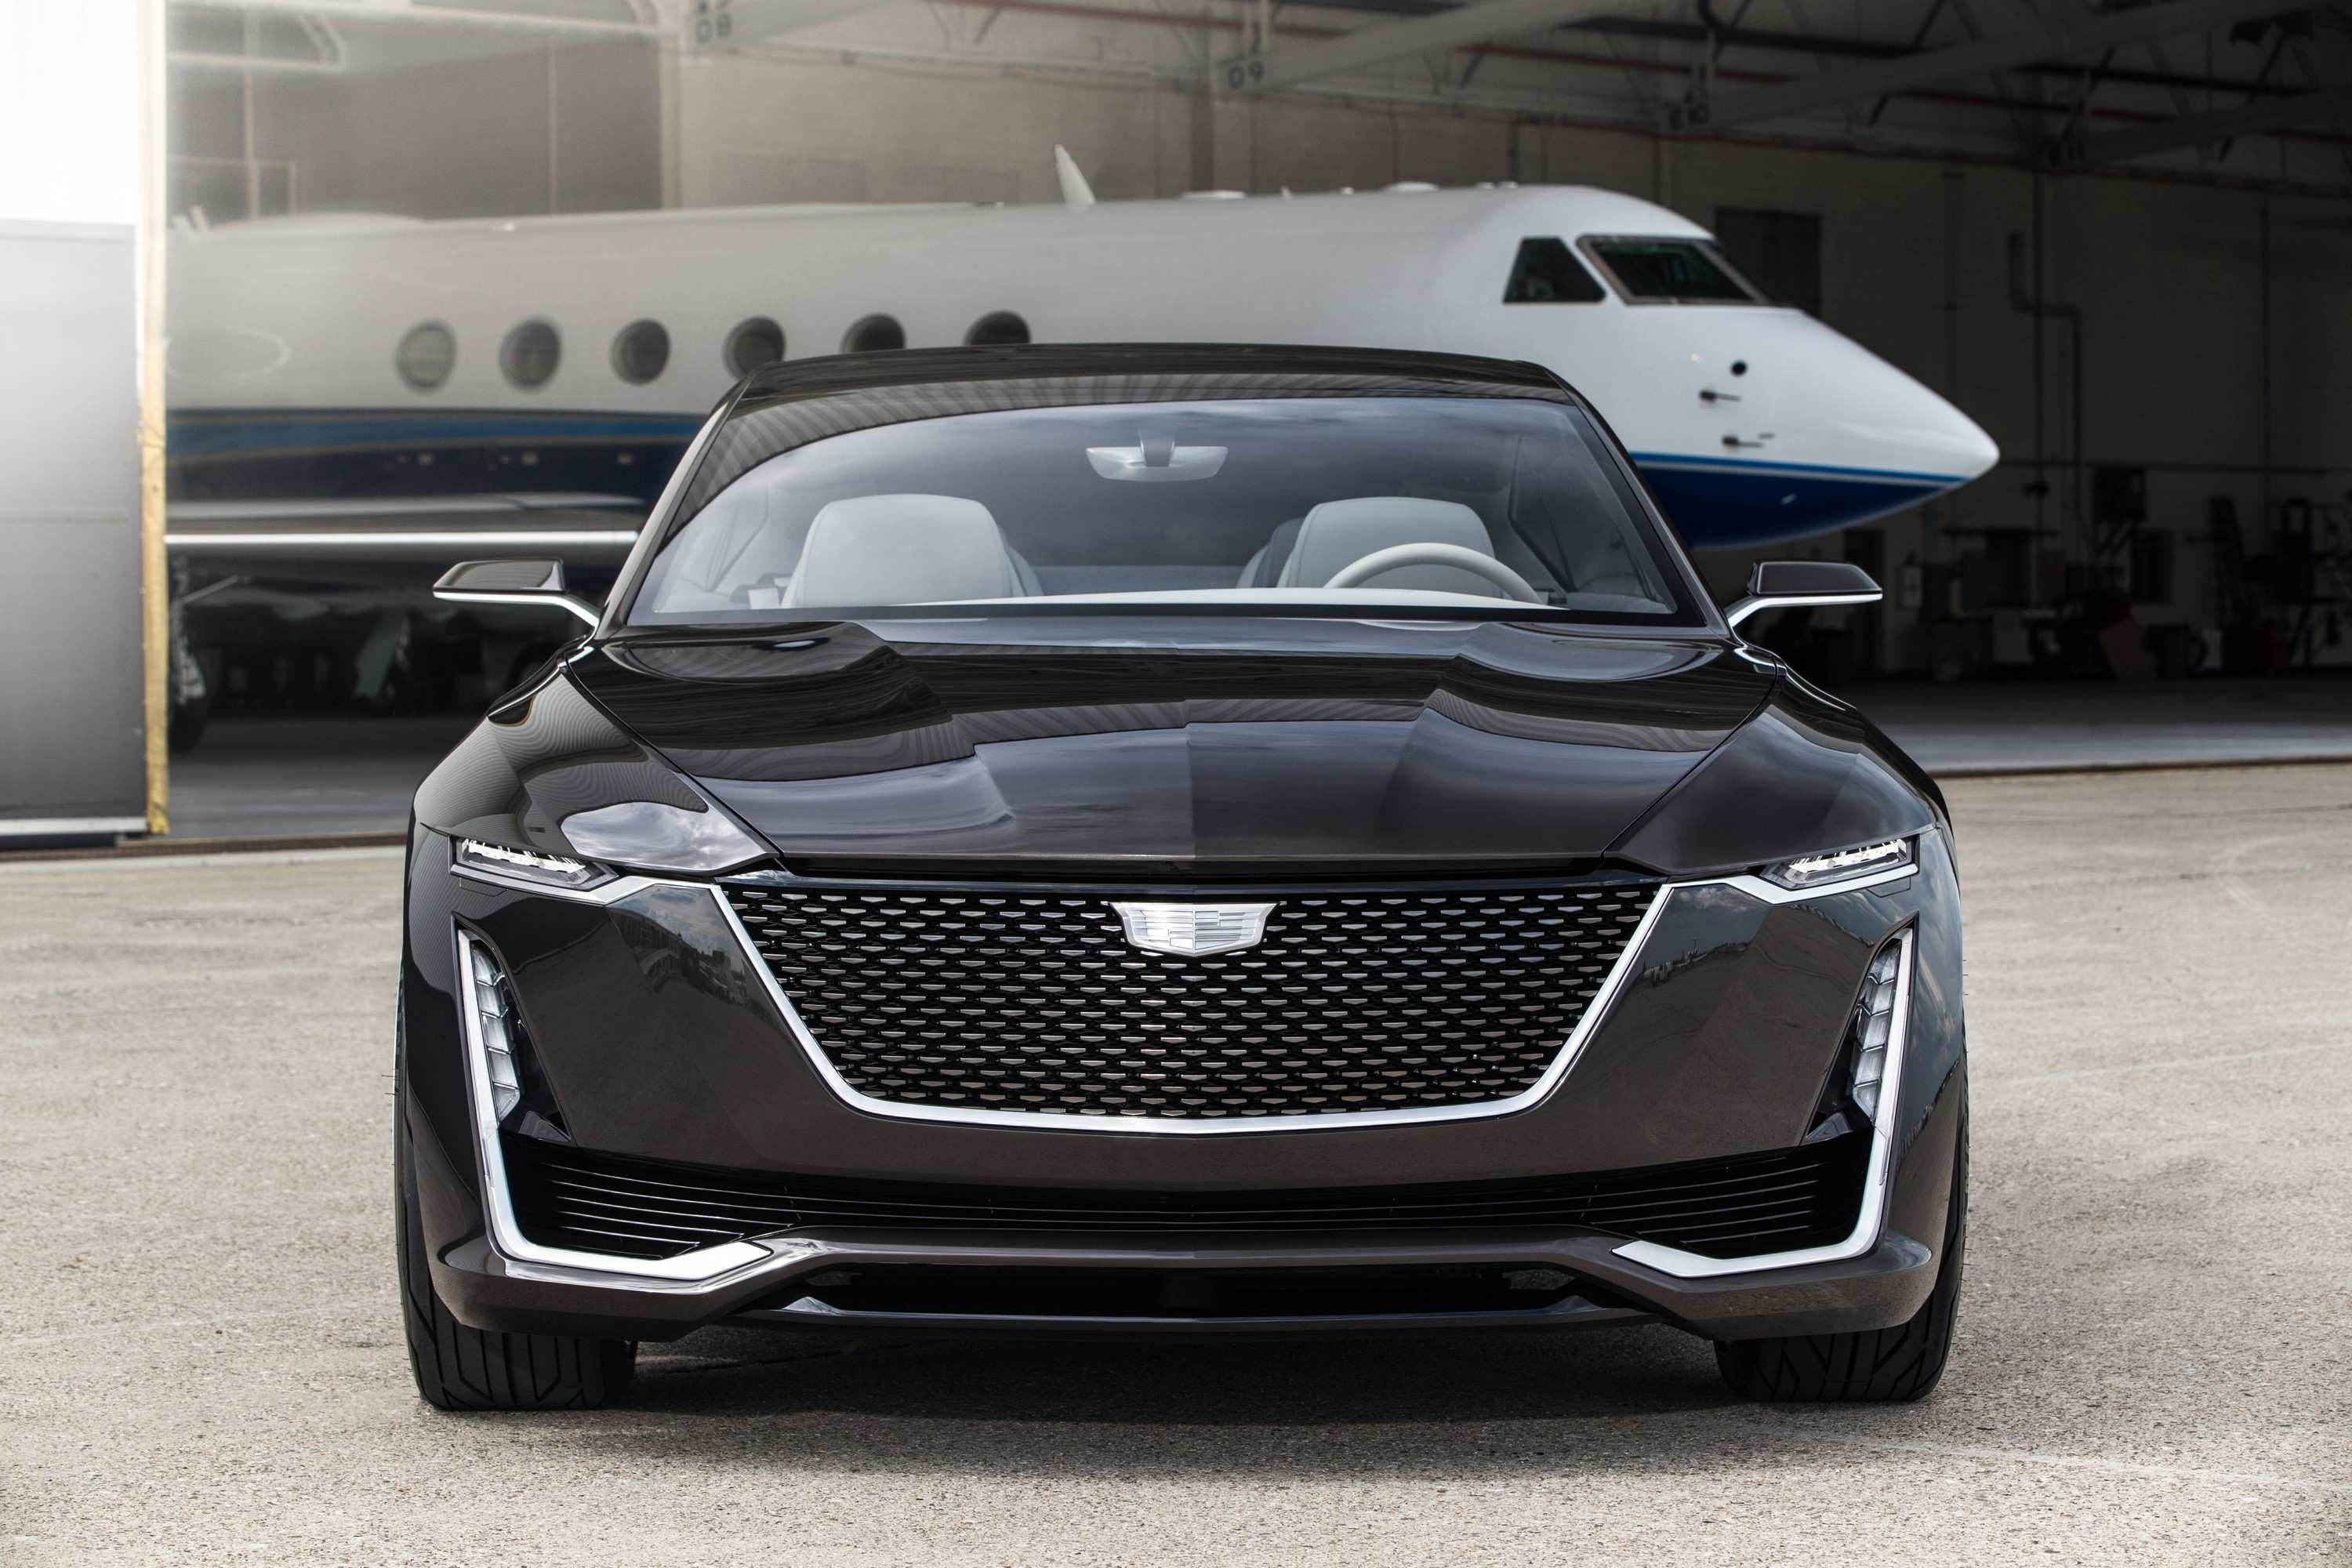 75 The 2020 Cadillac Cts V Prices